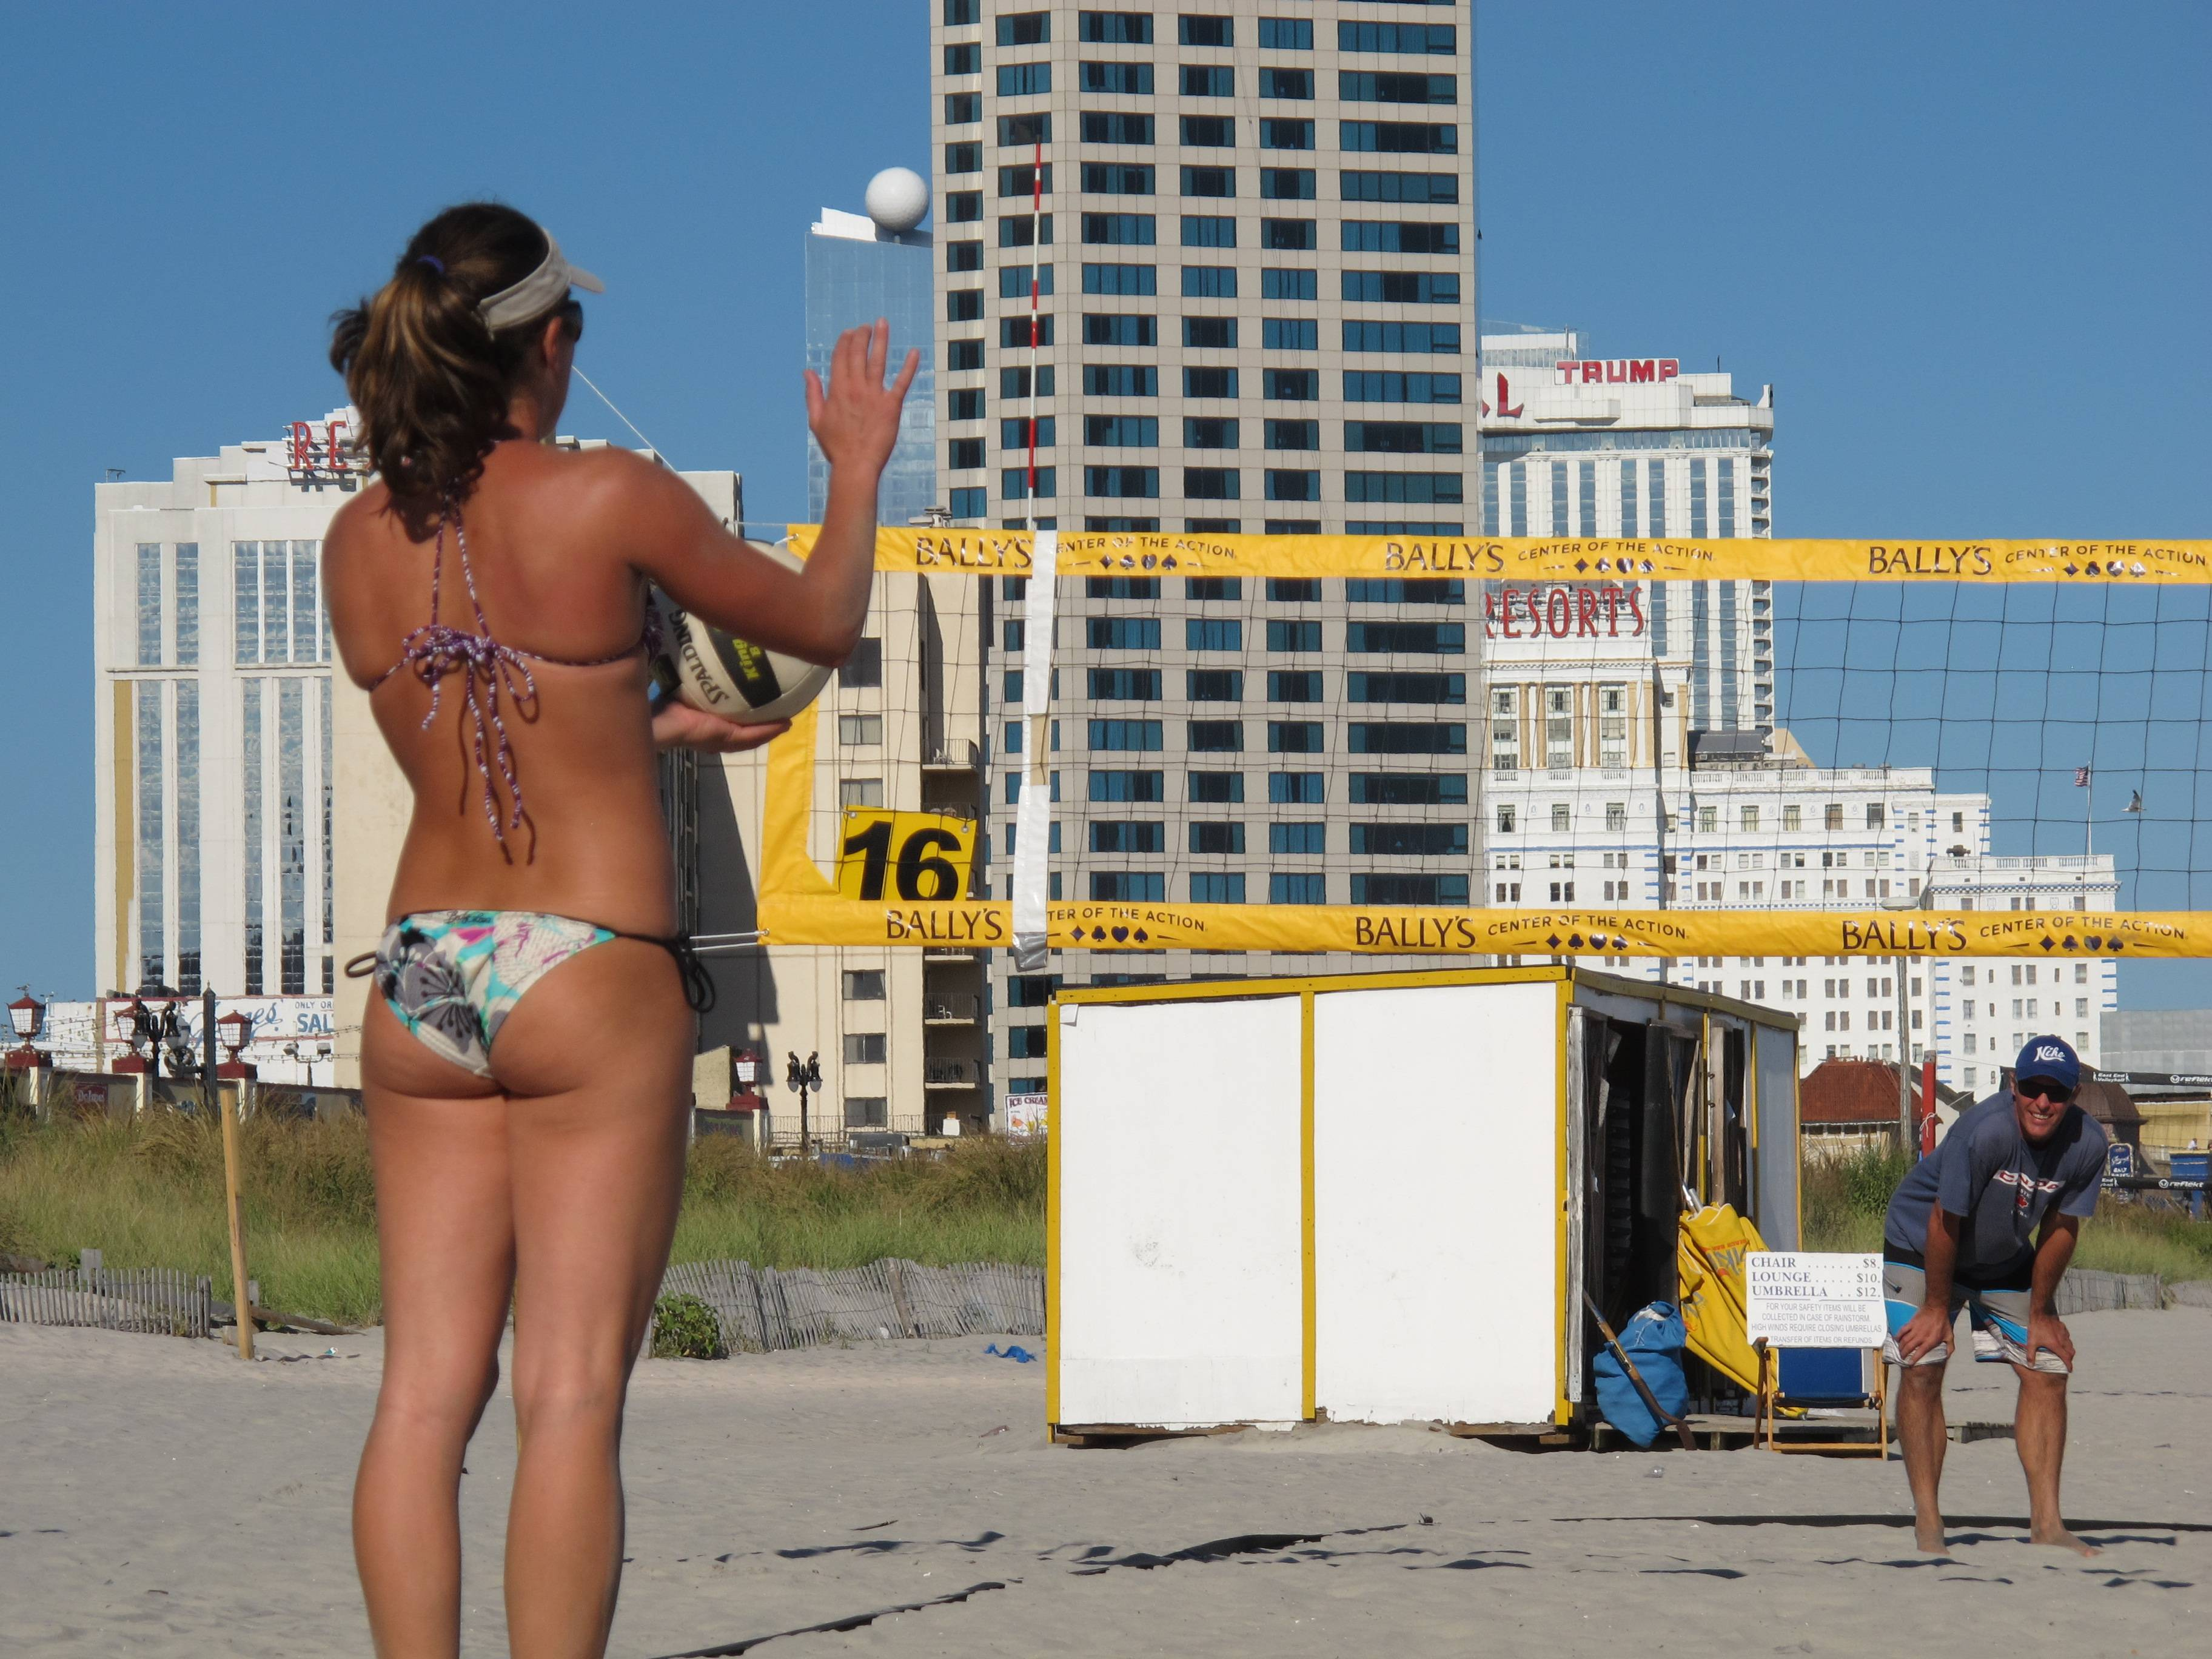 In this Sept. 6, 2013 photo, a woman prepares to serve a volleyball during a game on the Atlantic City N.J. beachfront before a national pro volleyball tour began there. That tour will return again this summer, along with many other free activities that don't involve gambling.